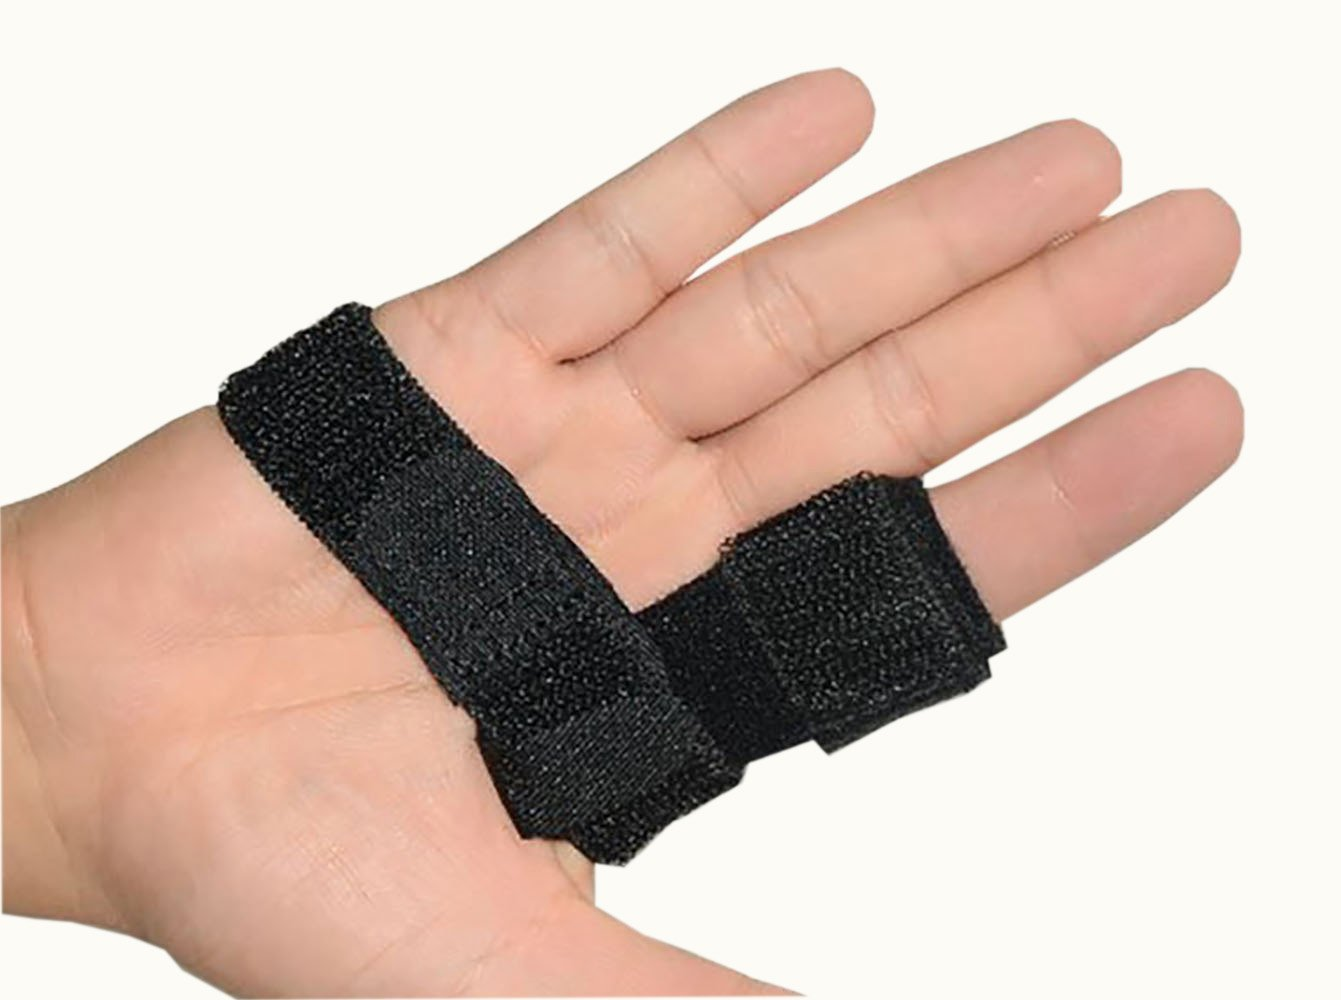 SW Trigger Finger Brace Splint Pain Relief Comfortable Materials Heal Stenosing Tenosynovitis and Softens Injury Symptoms | Adjustable for Pinky,Thumb,Ring,Index, and Middle Finger by SW (Image #4)